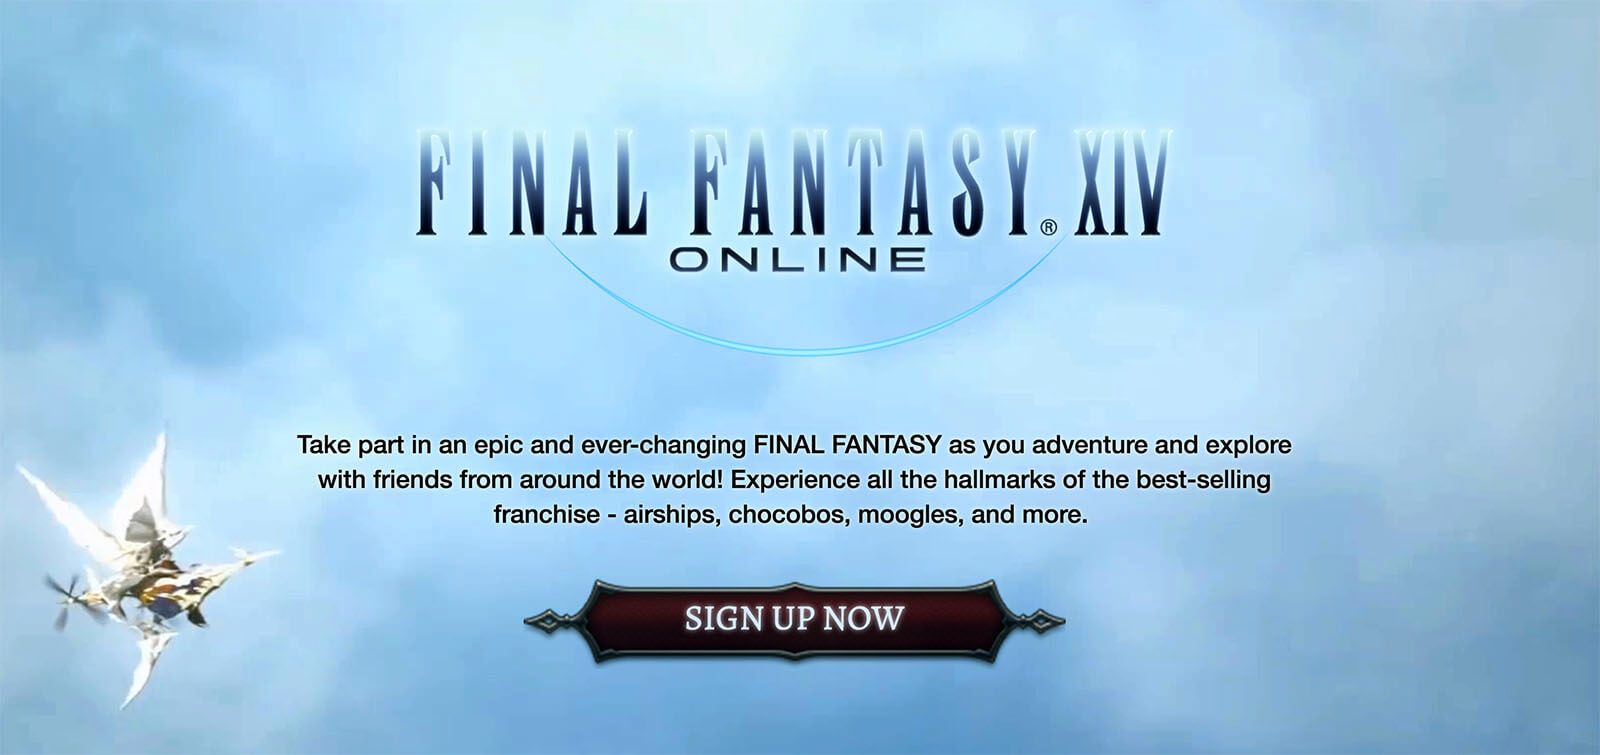 Final Fantasy 14 Website